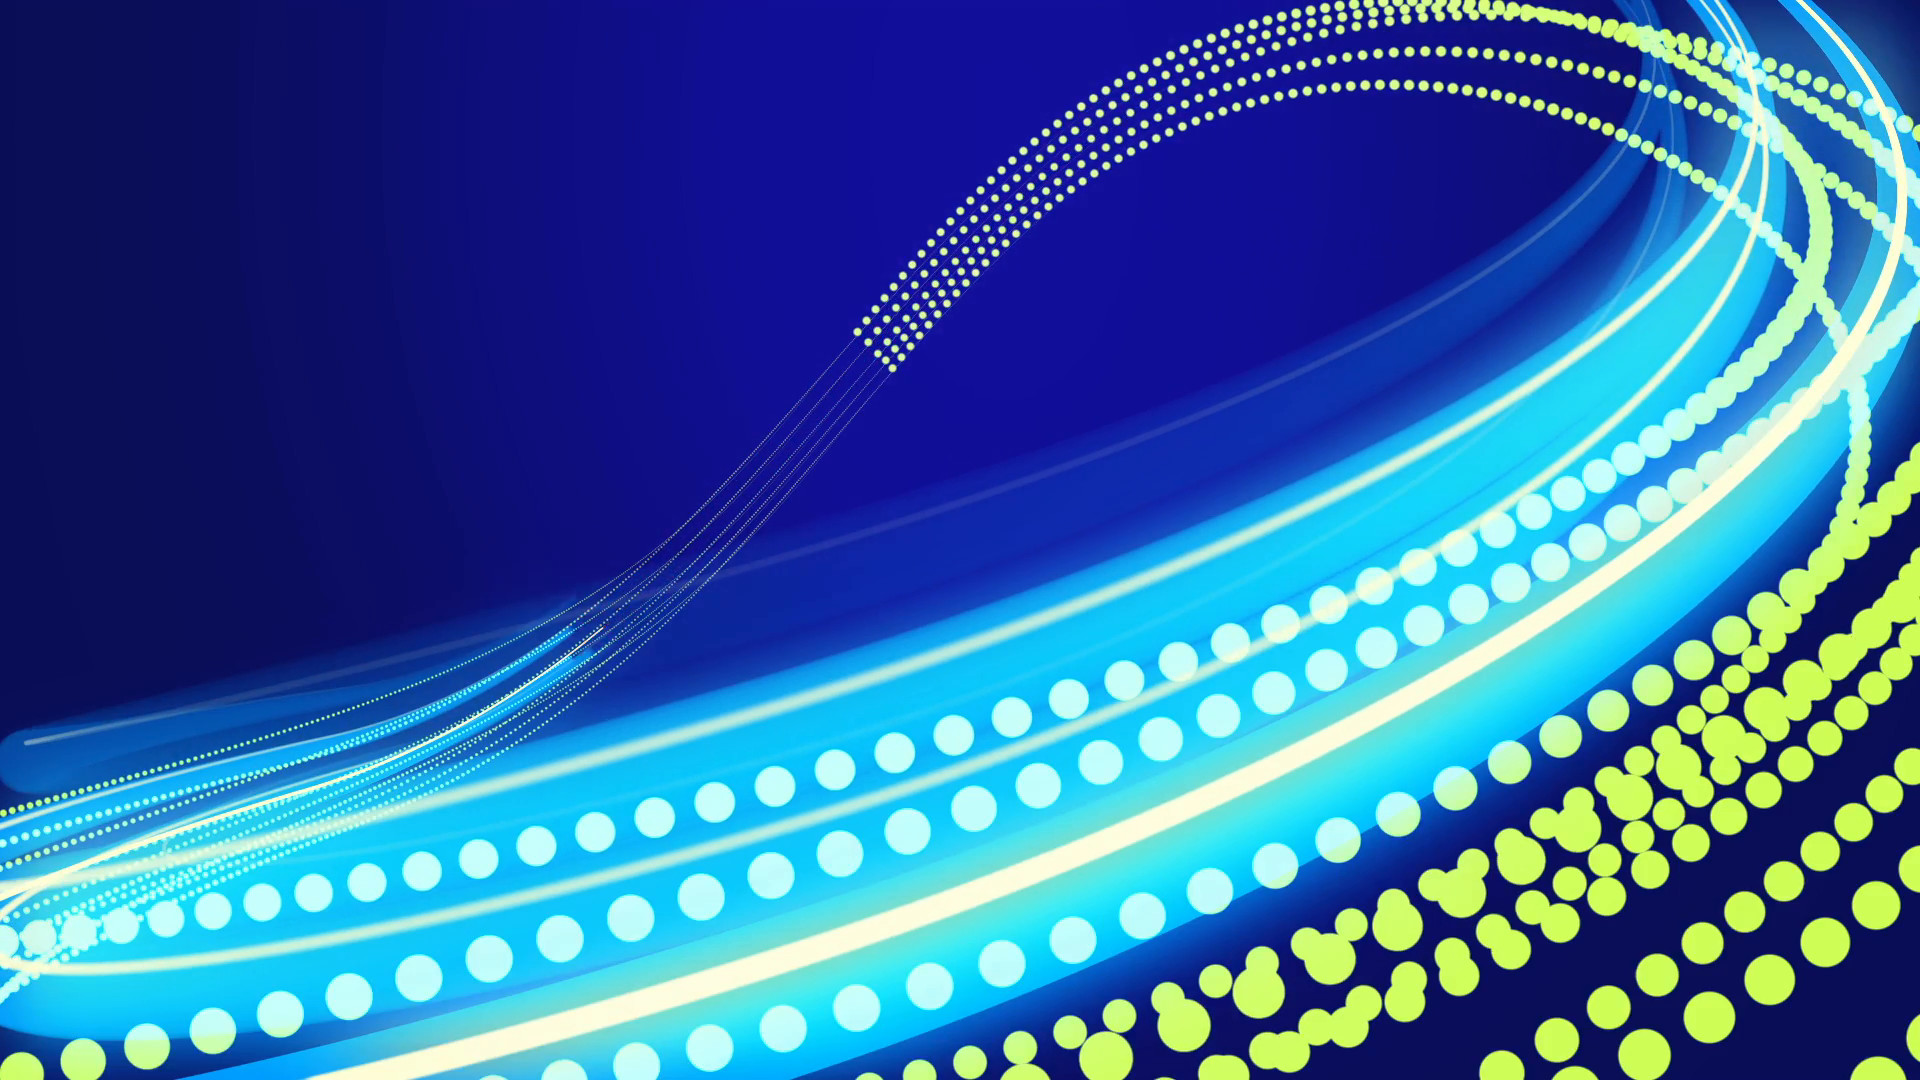 Subscription Library Animated blue abstract background with blurred magic  neon light curved lines.